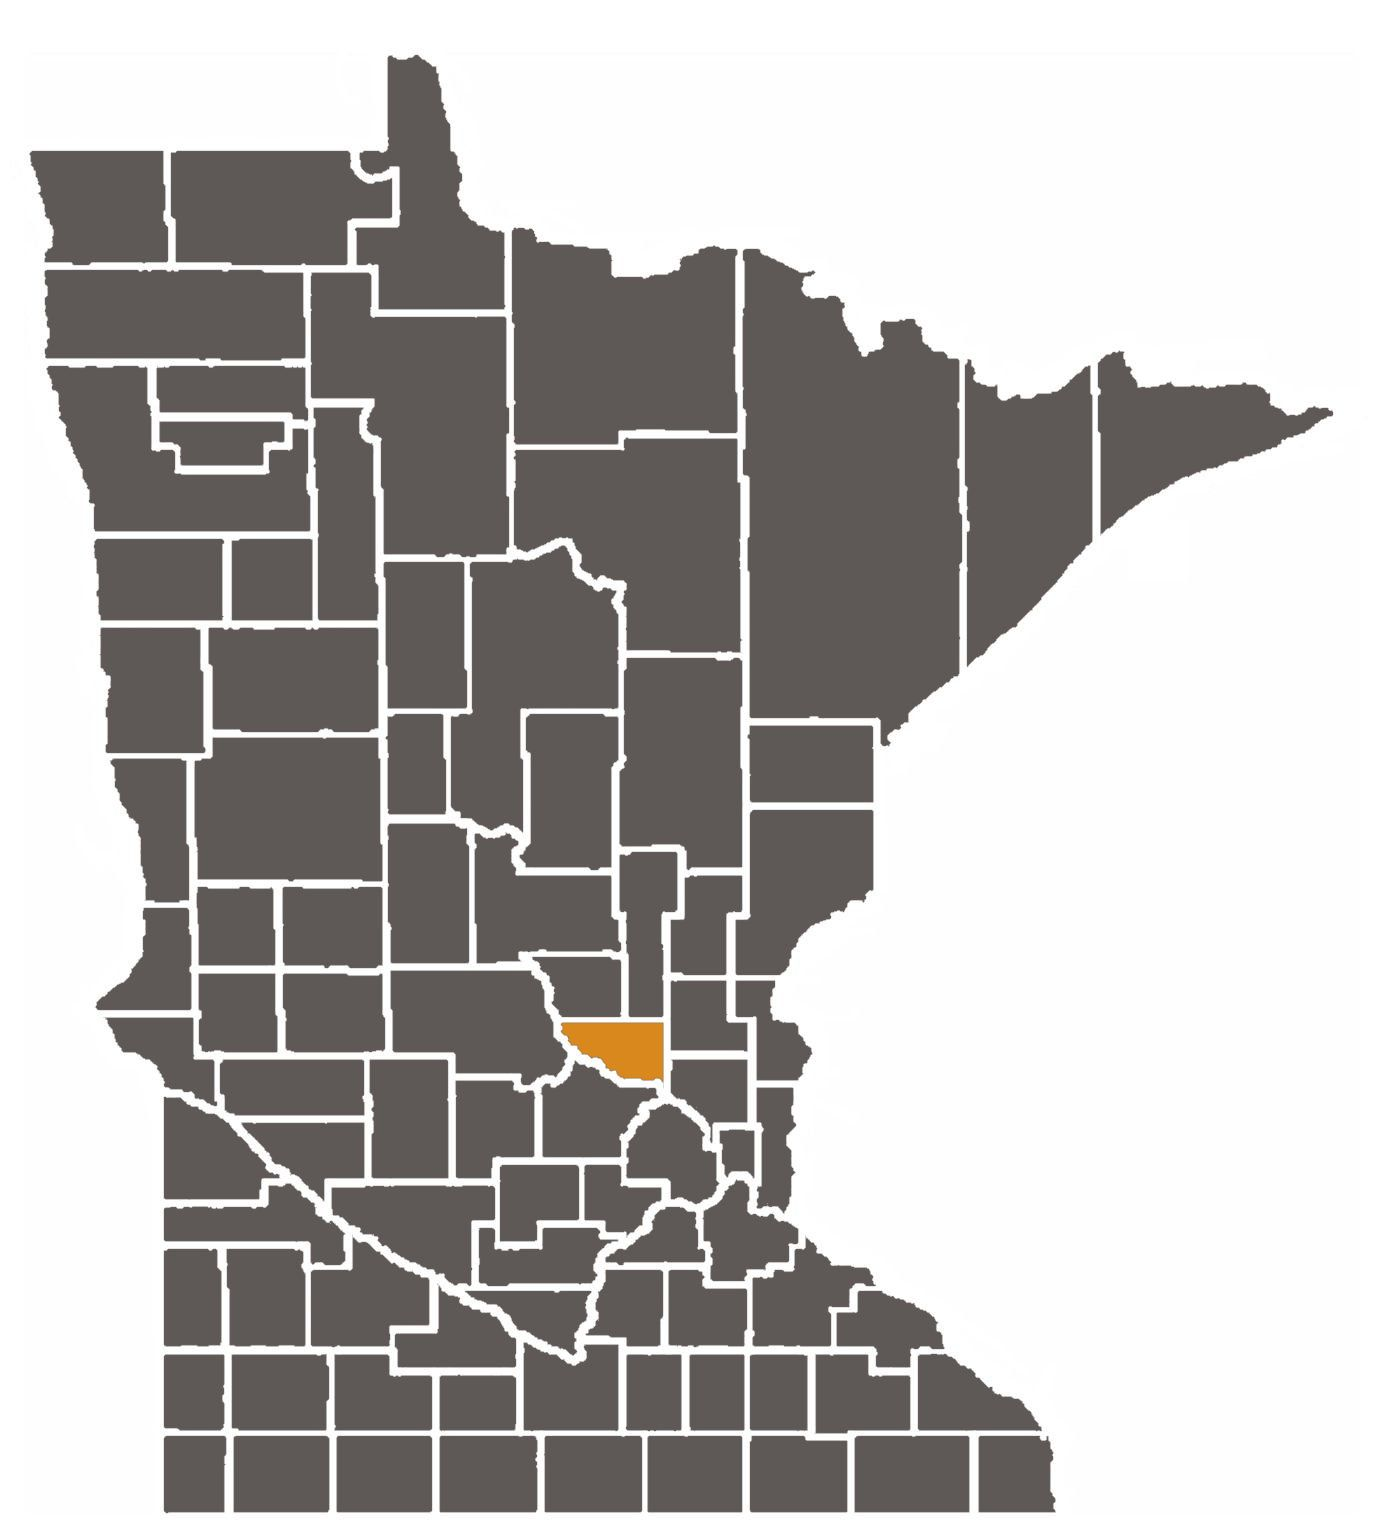 Minnesota map with Shurburne County highlighted.